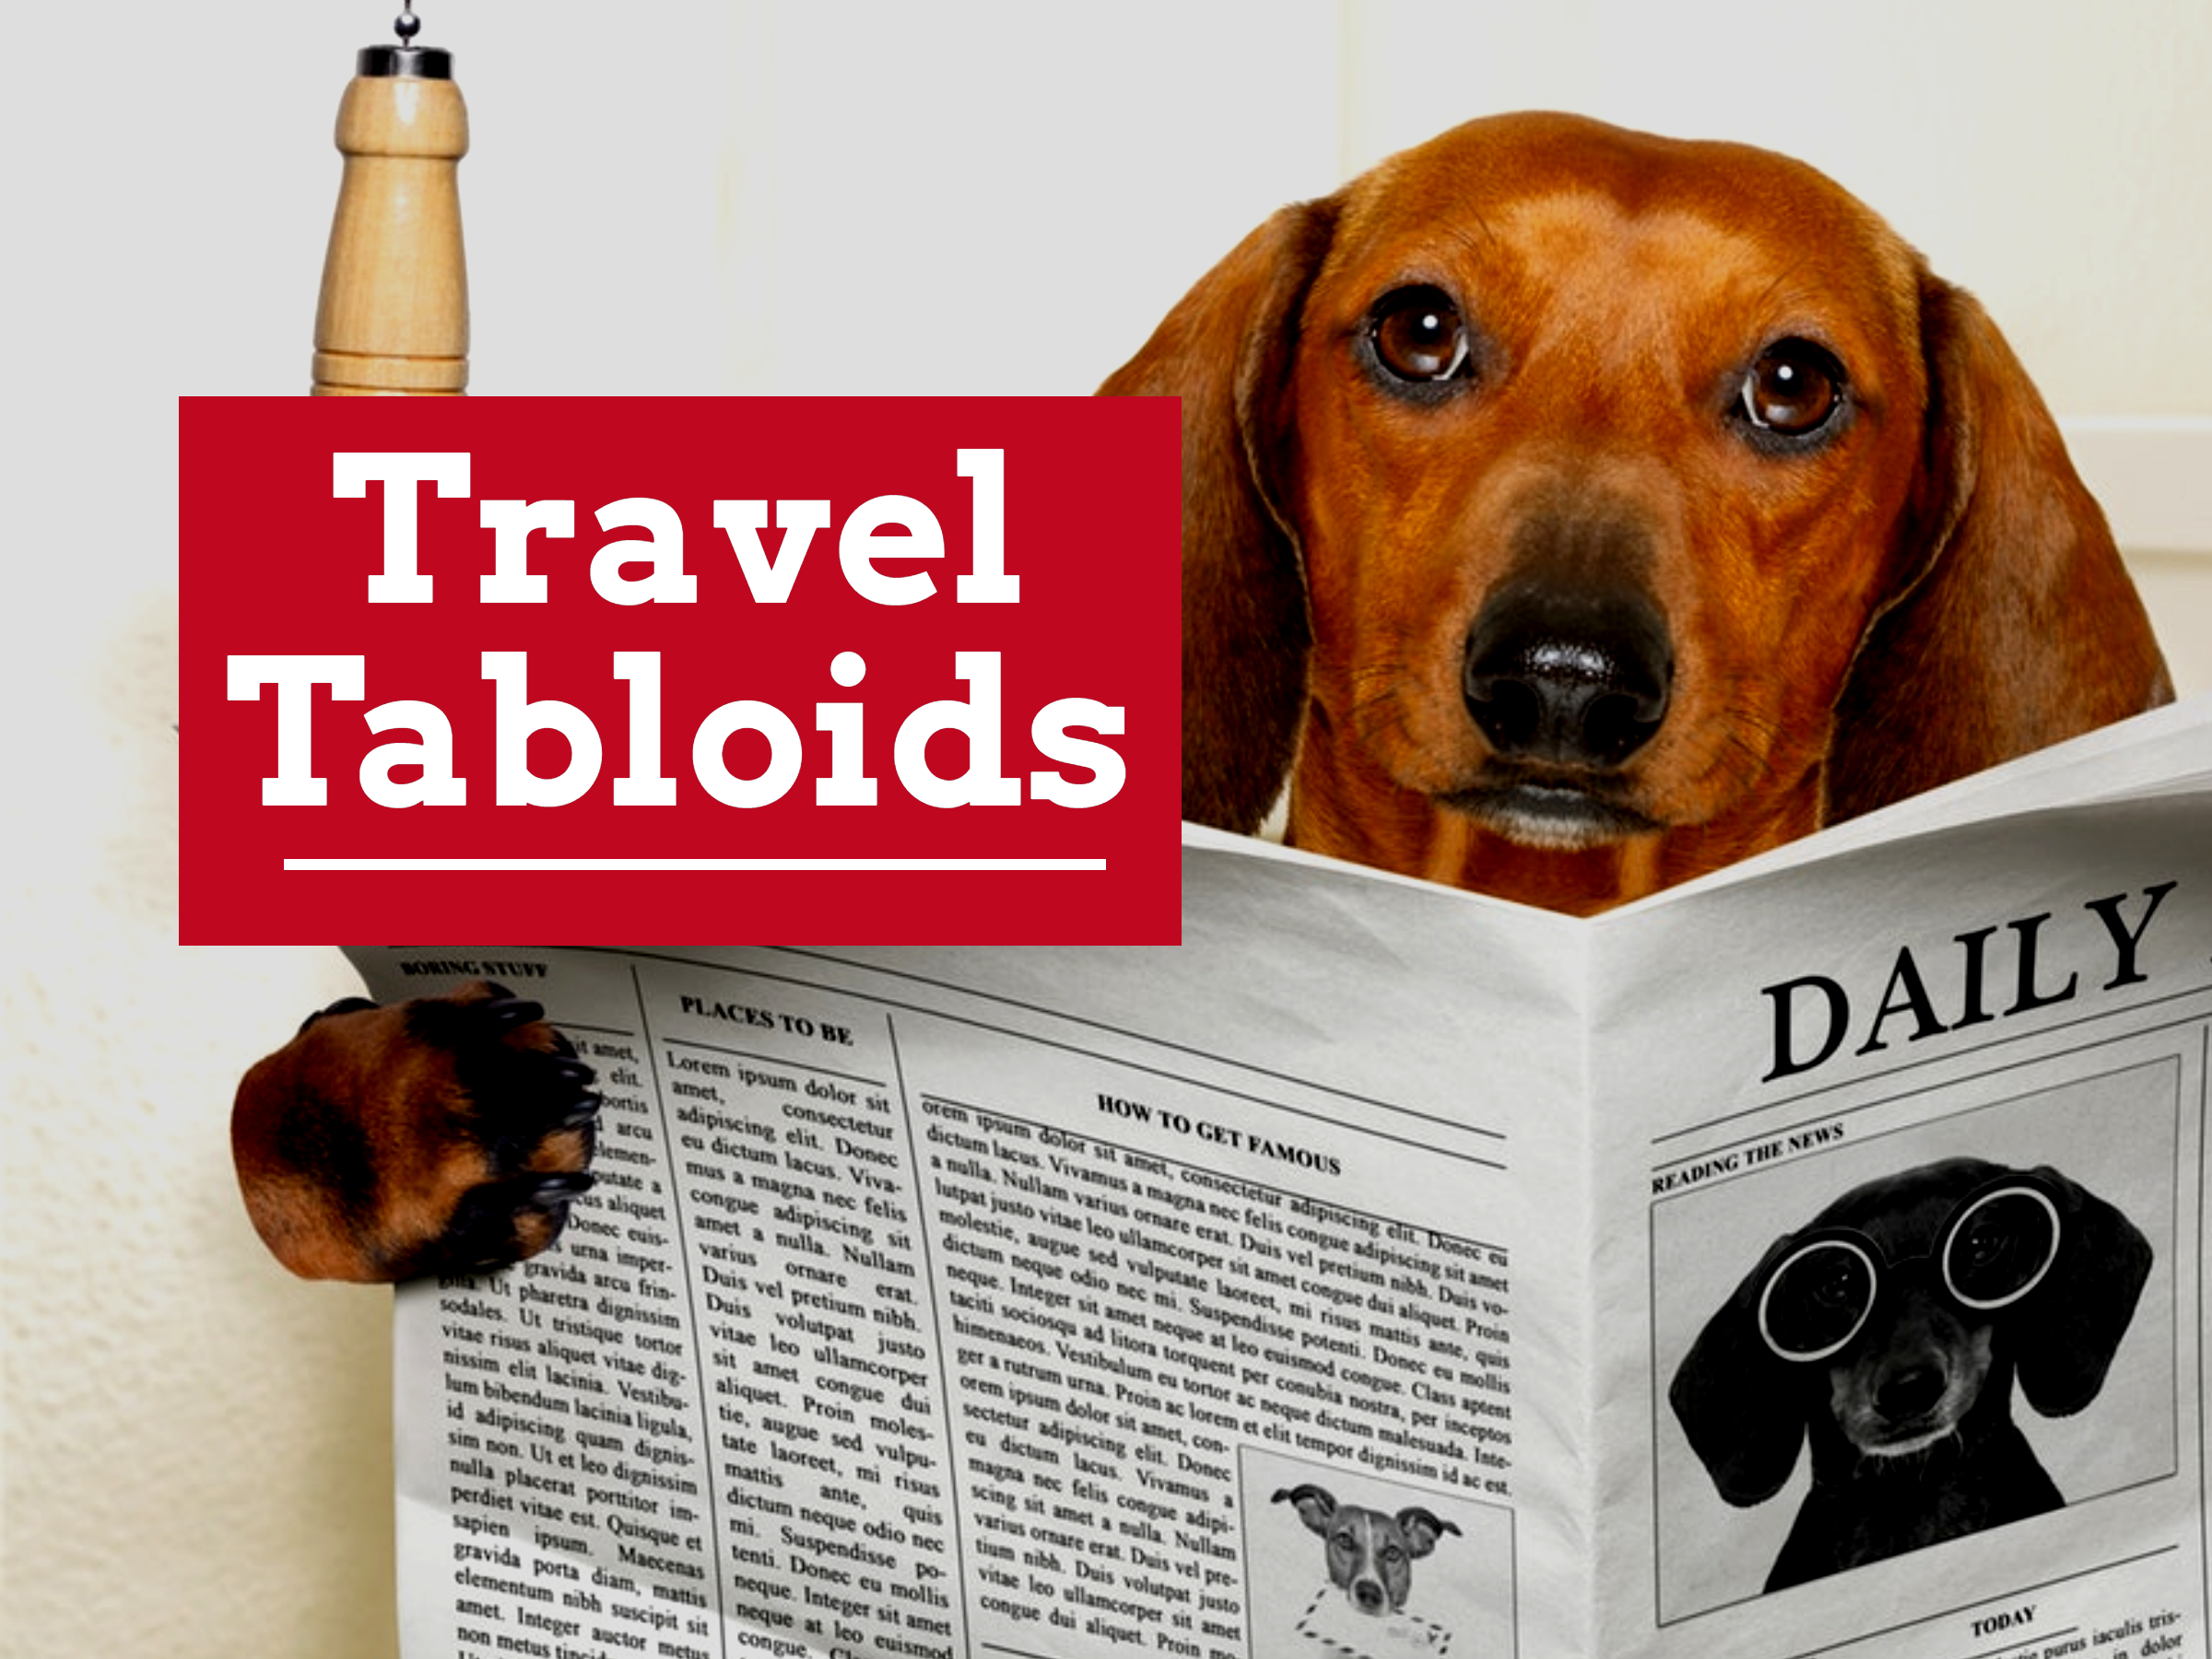 Travel Tabloids